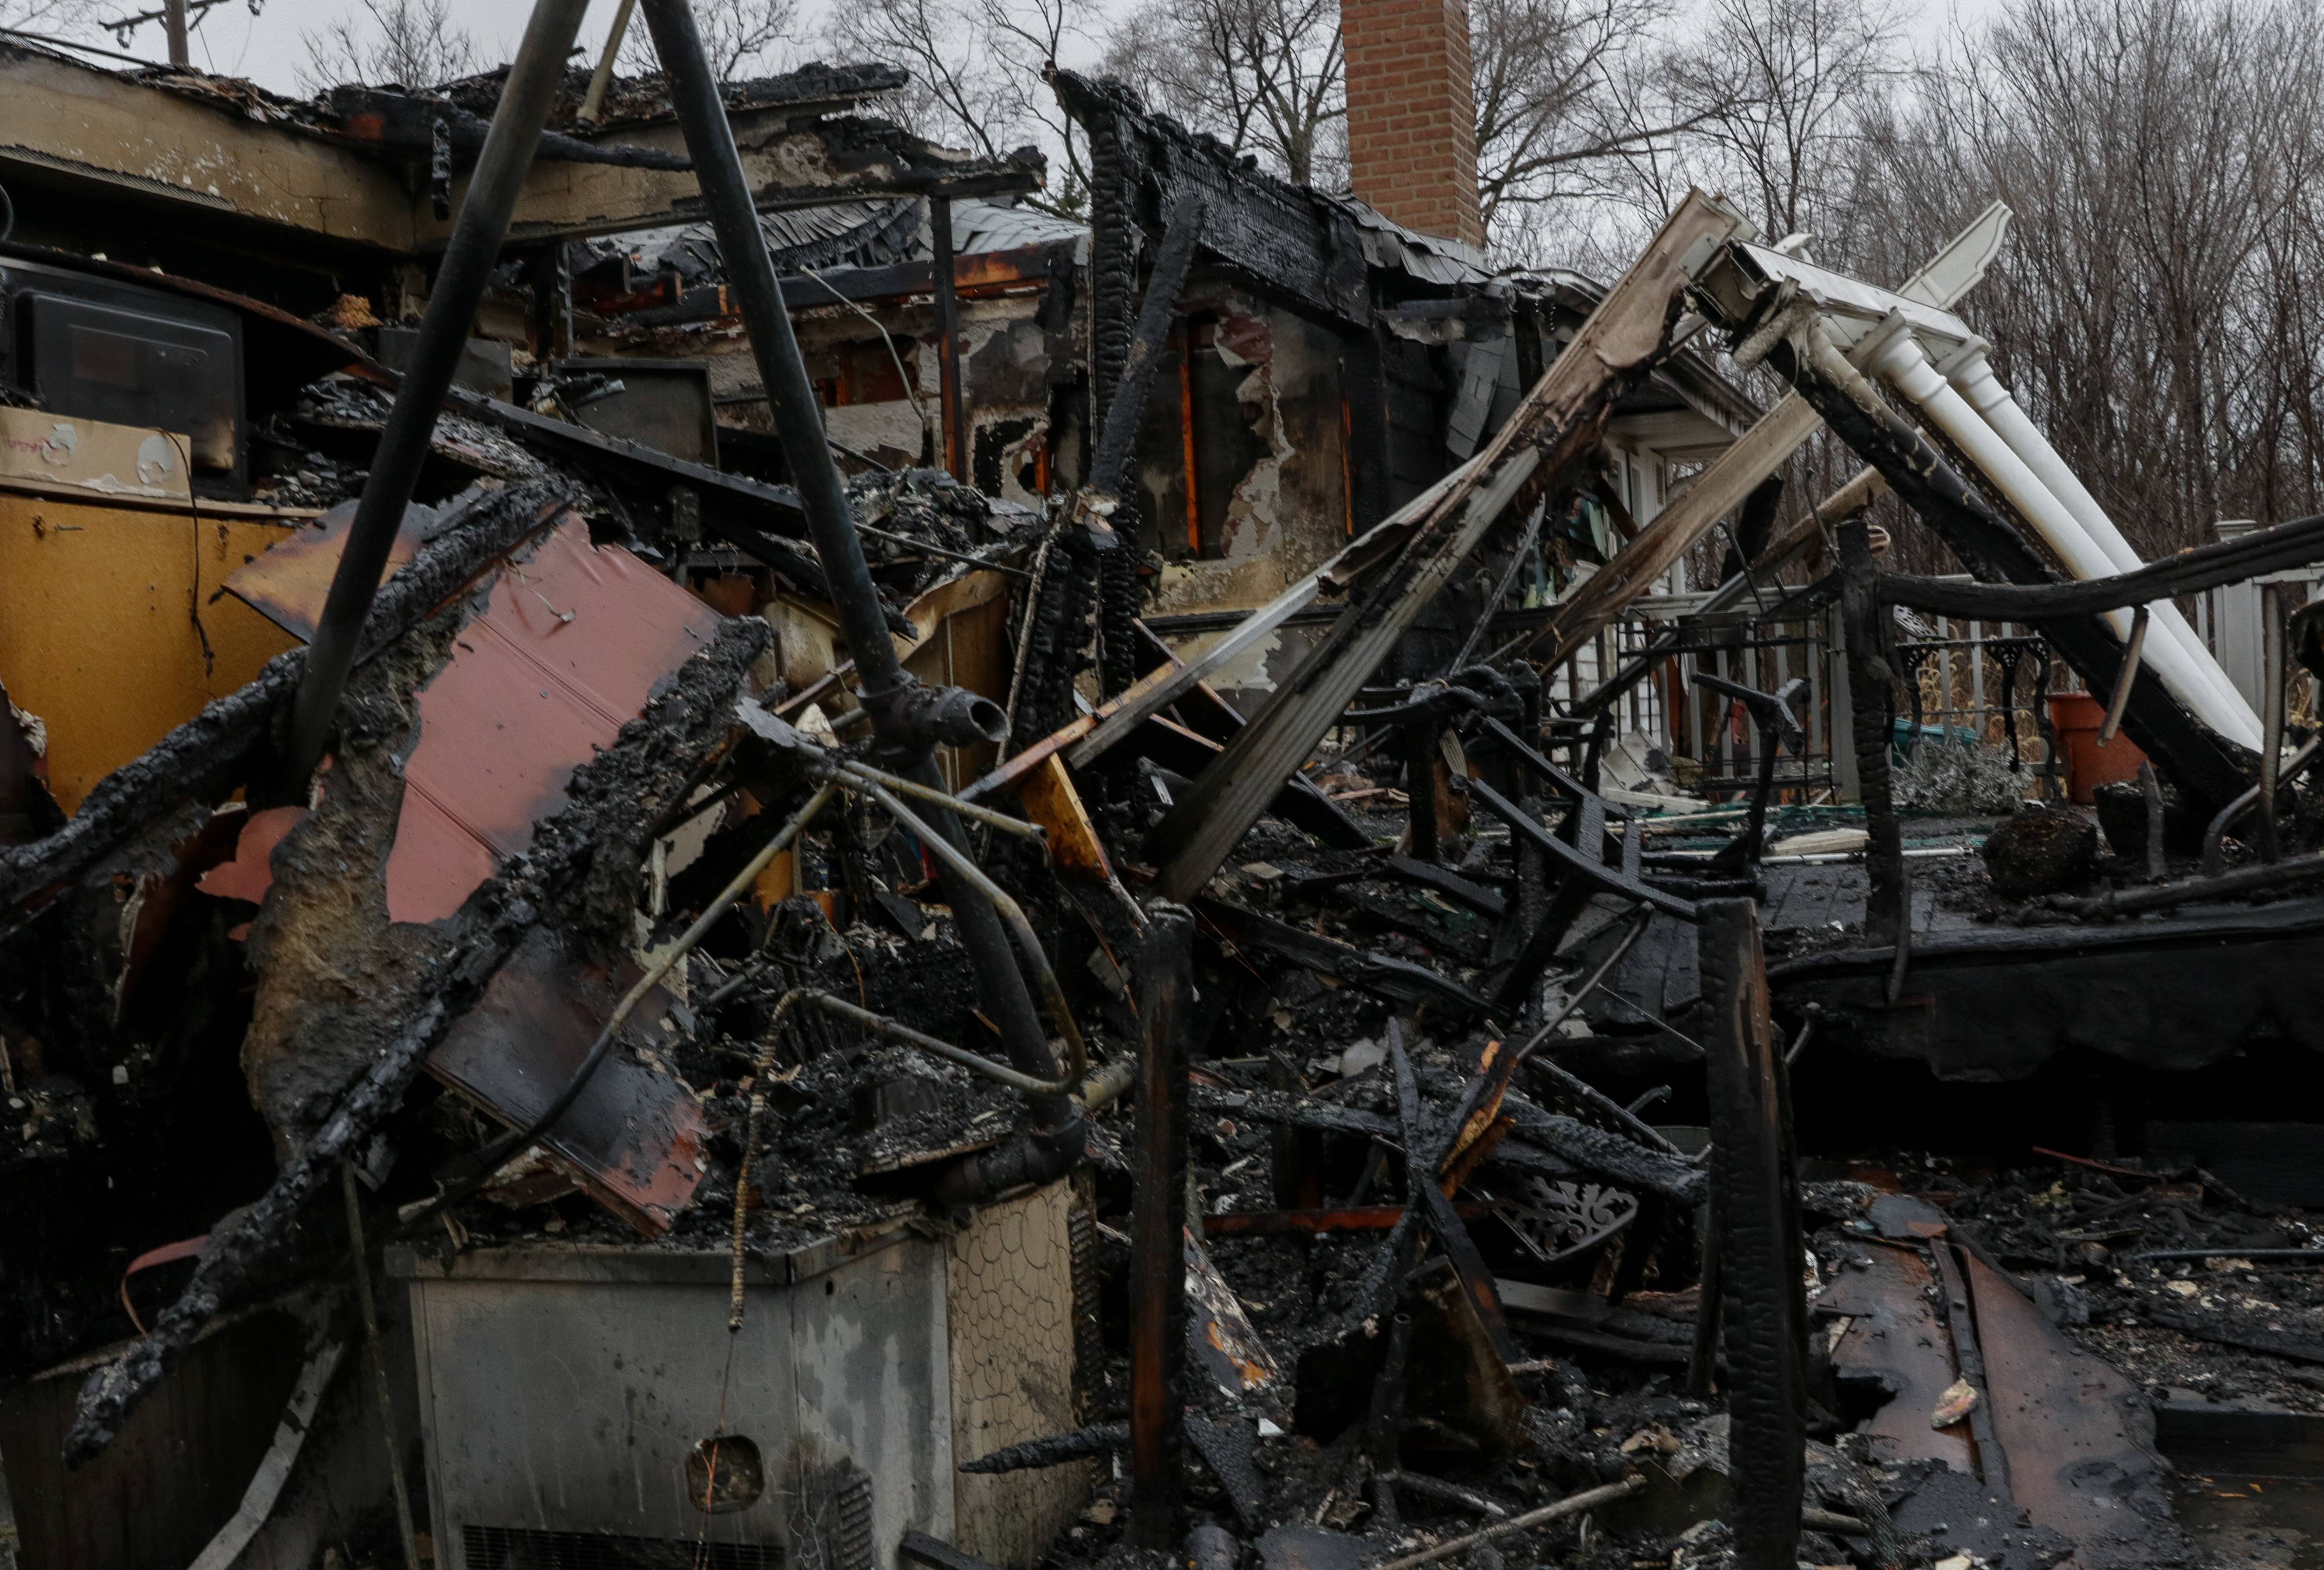 A 76-year-old couple has been identified as victims in the Jan. 22 fire on the 700 block of Ellsworth Avenue in Addison.